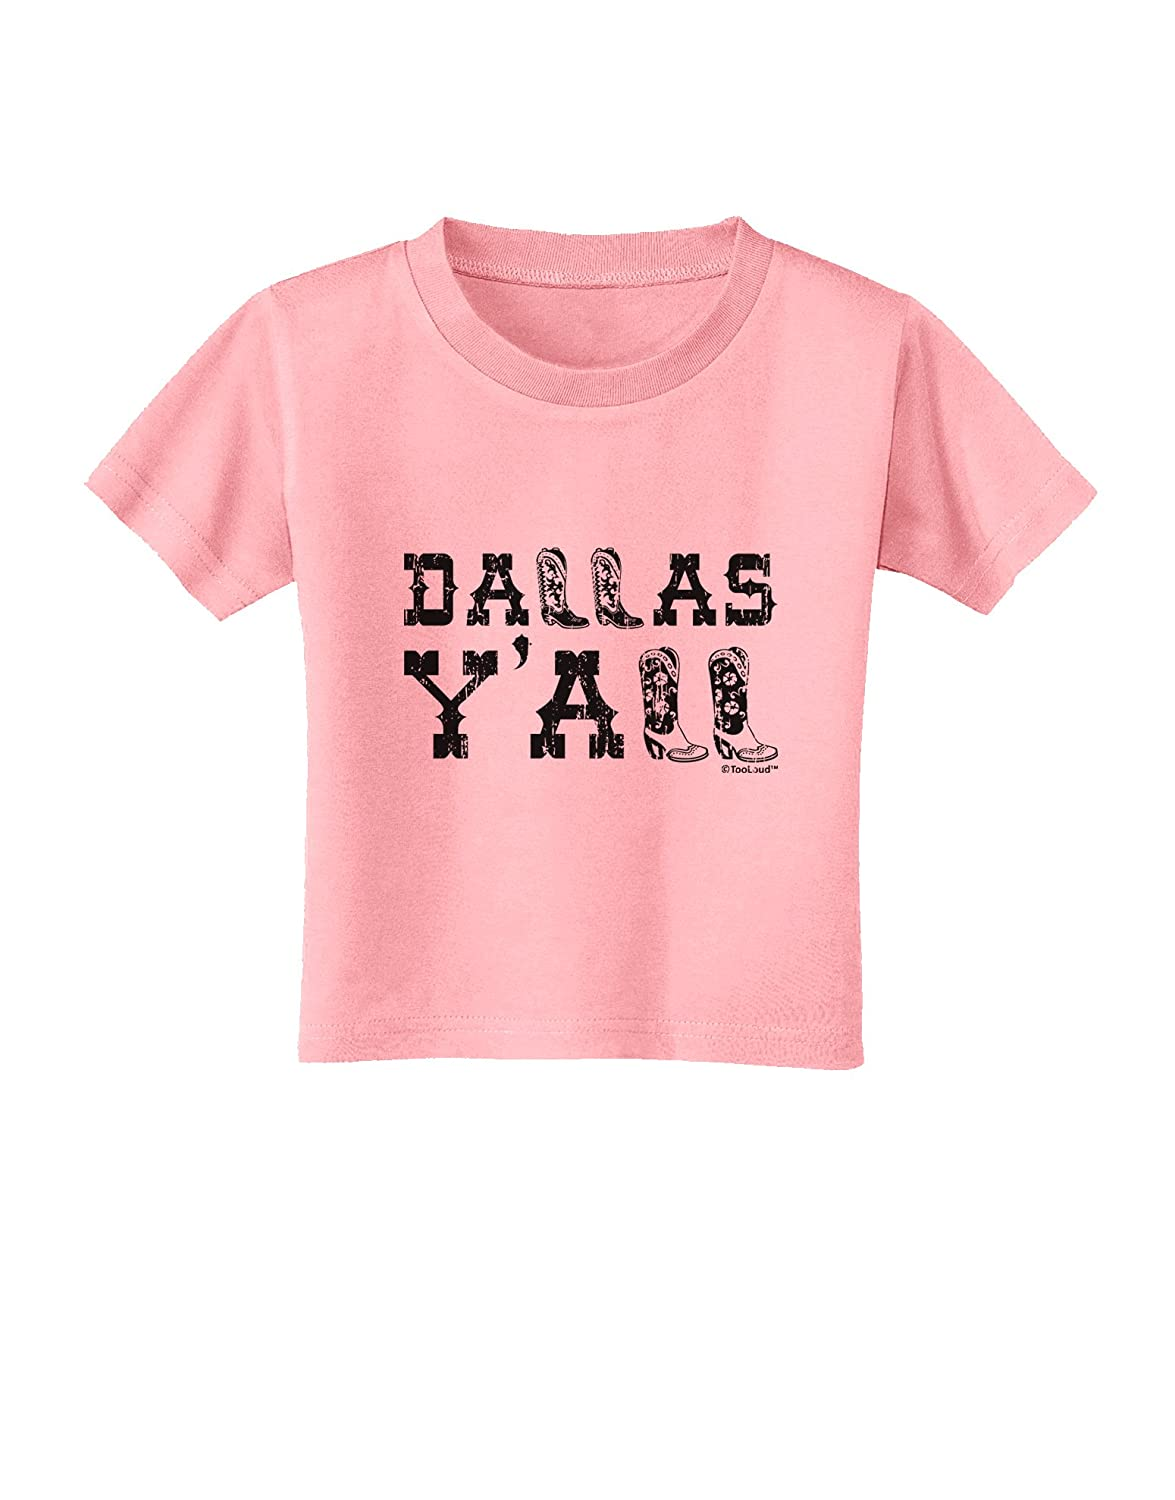 TooLoud Dallas Yall Boots Texas Pride Toddler T-Shirt